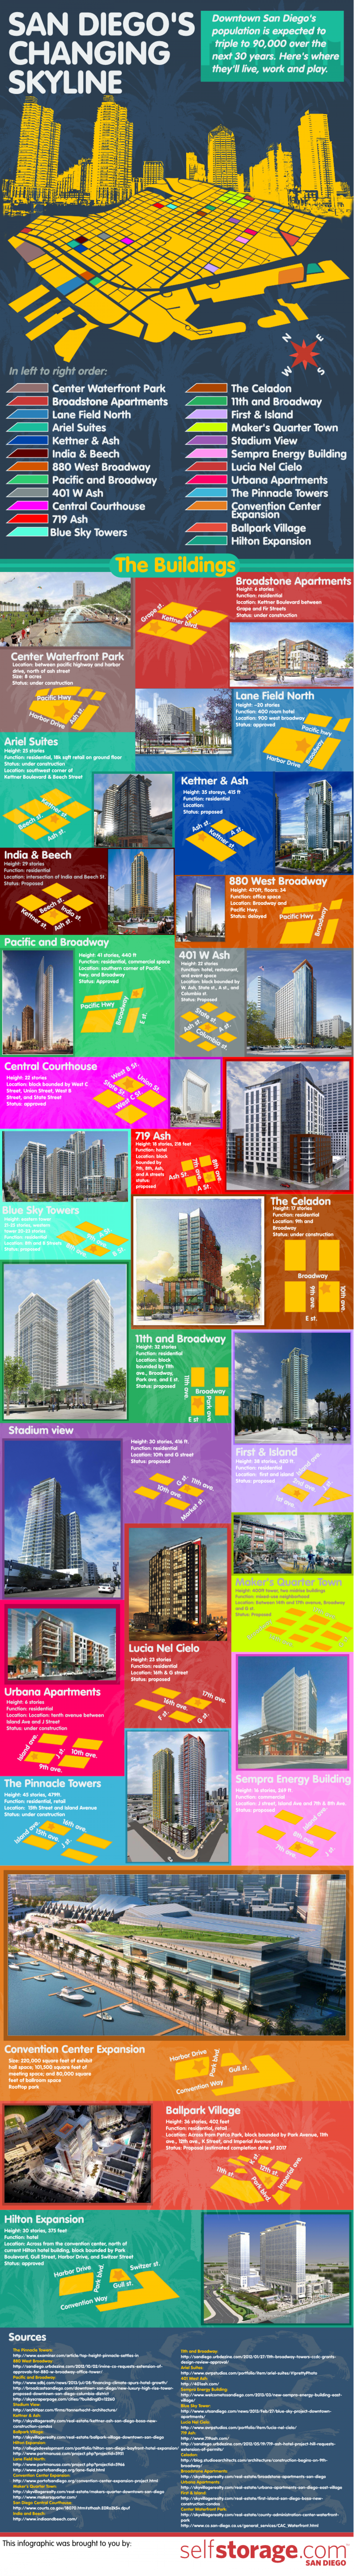 San Diego's Changing Skyline Infographic